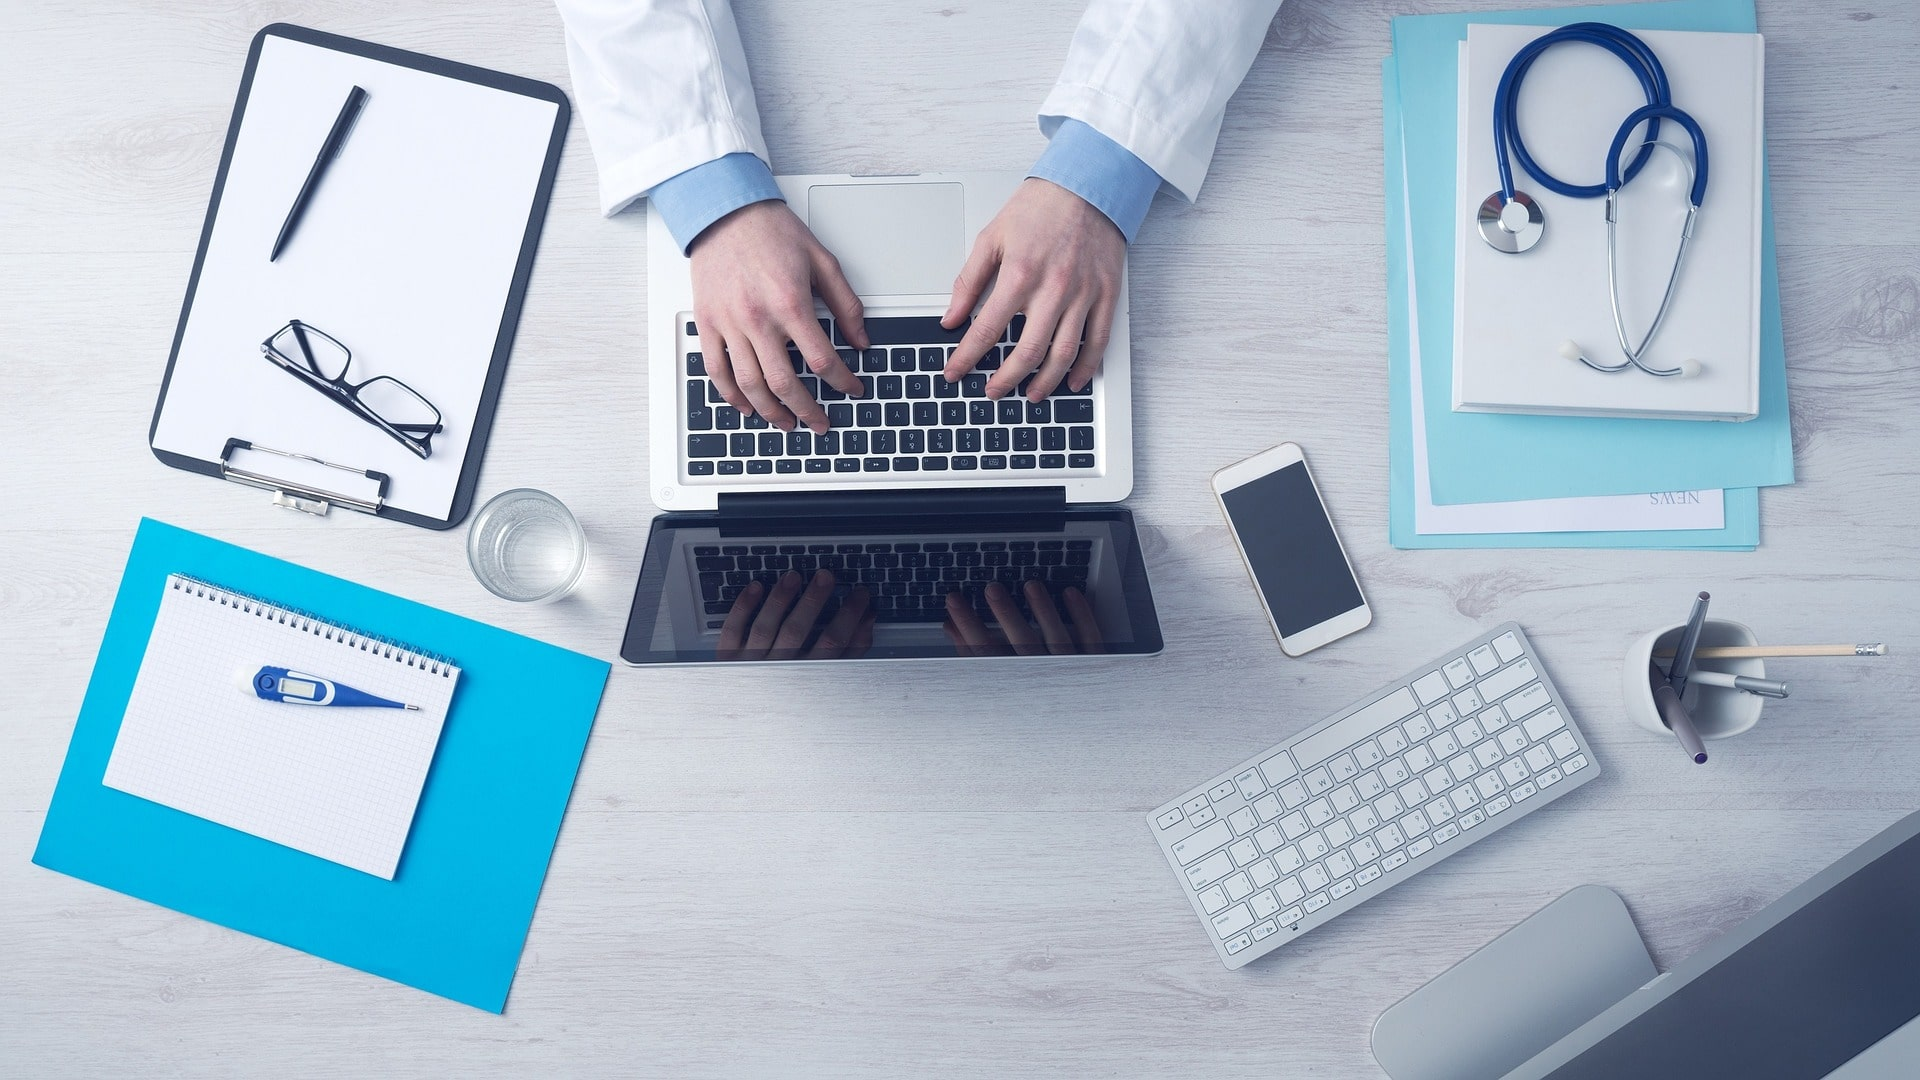 A doctor working with laptop, note, documents, thermometer, stethoscope